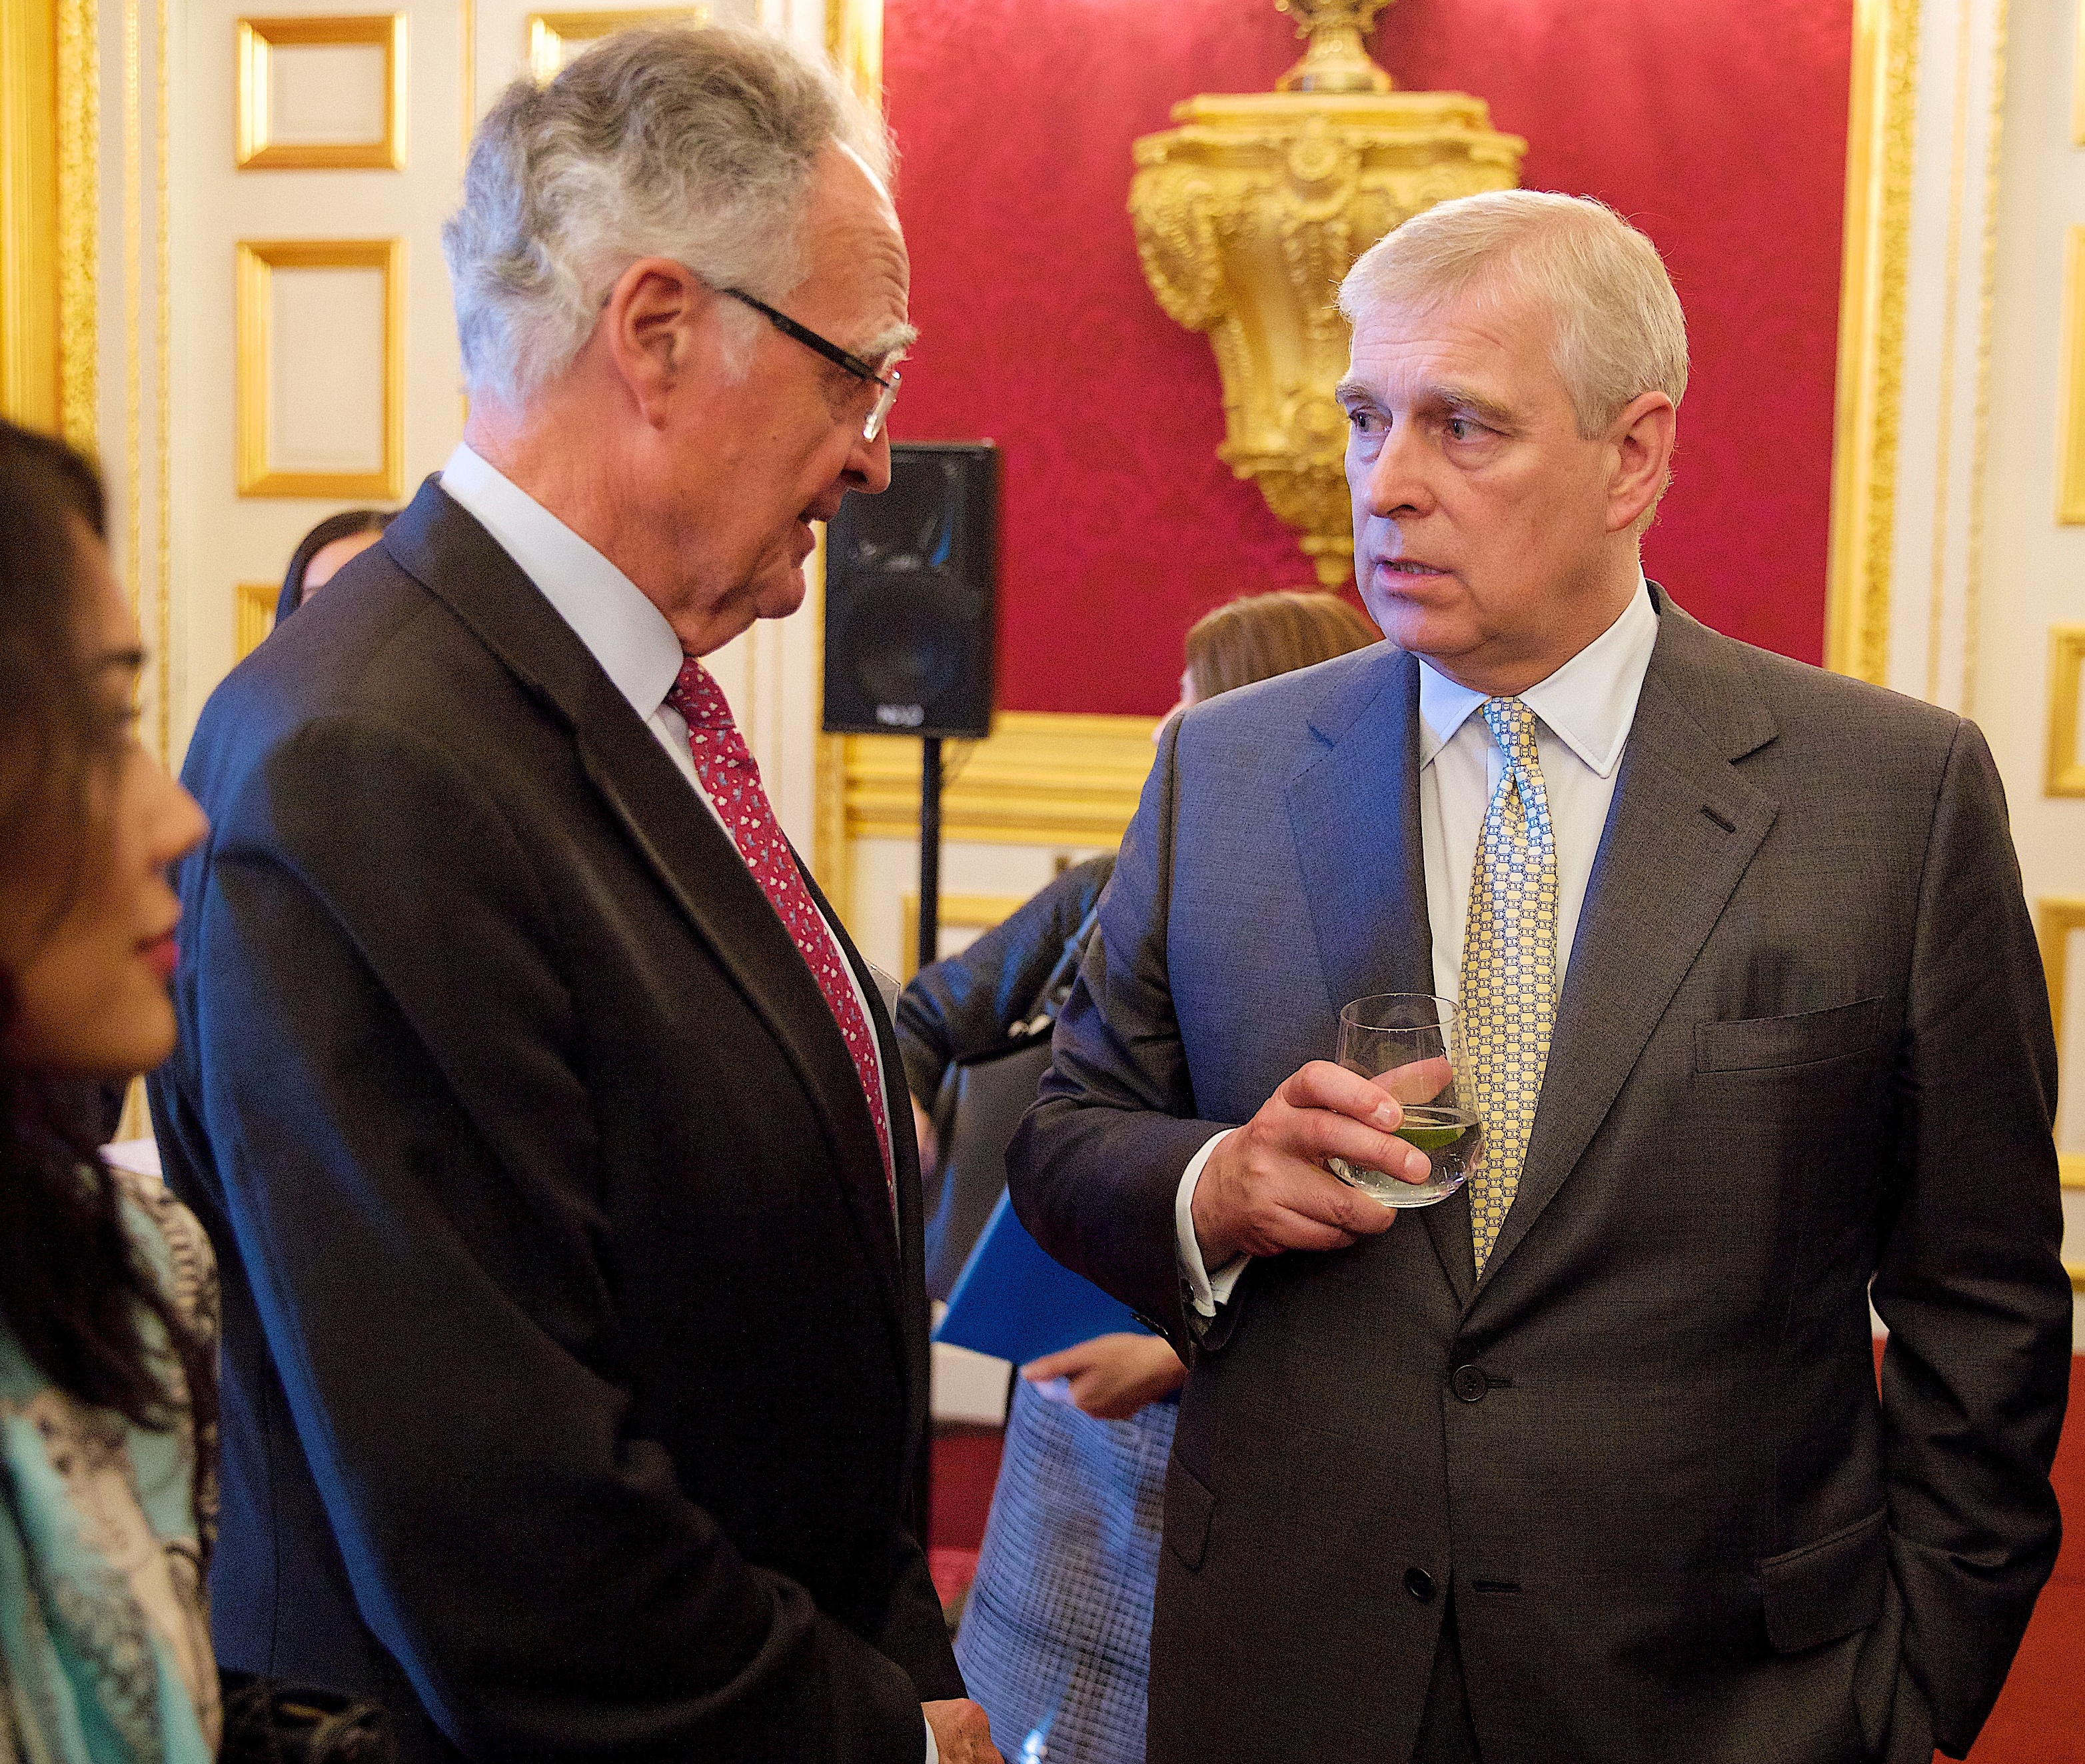 Peter Hambro and The Duke of York